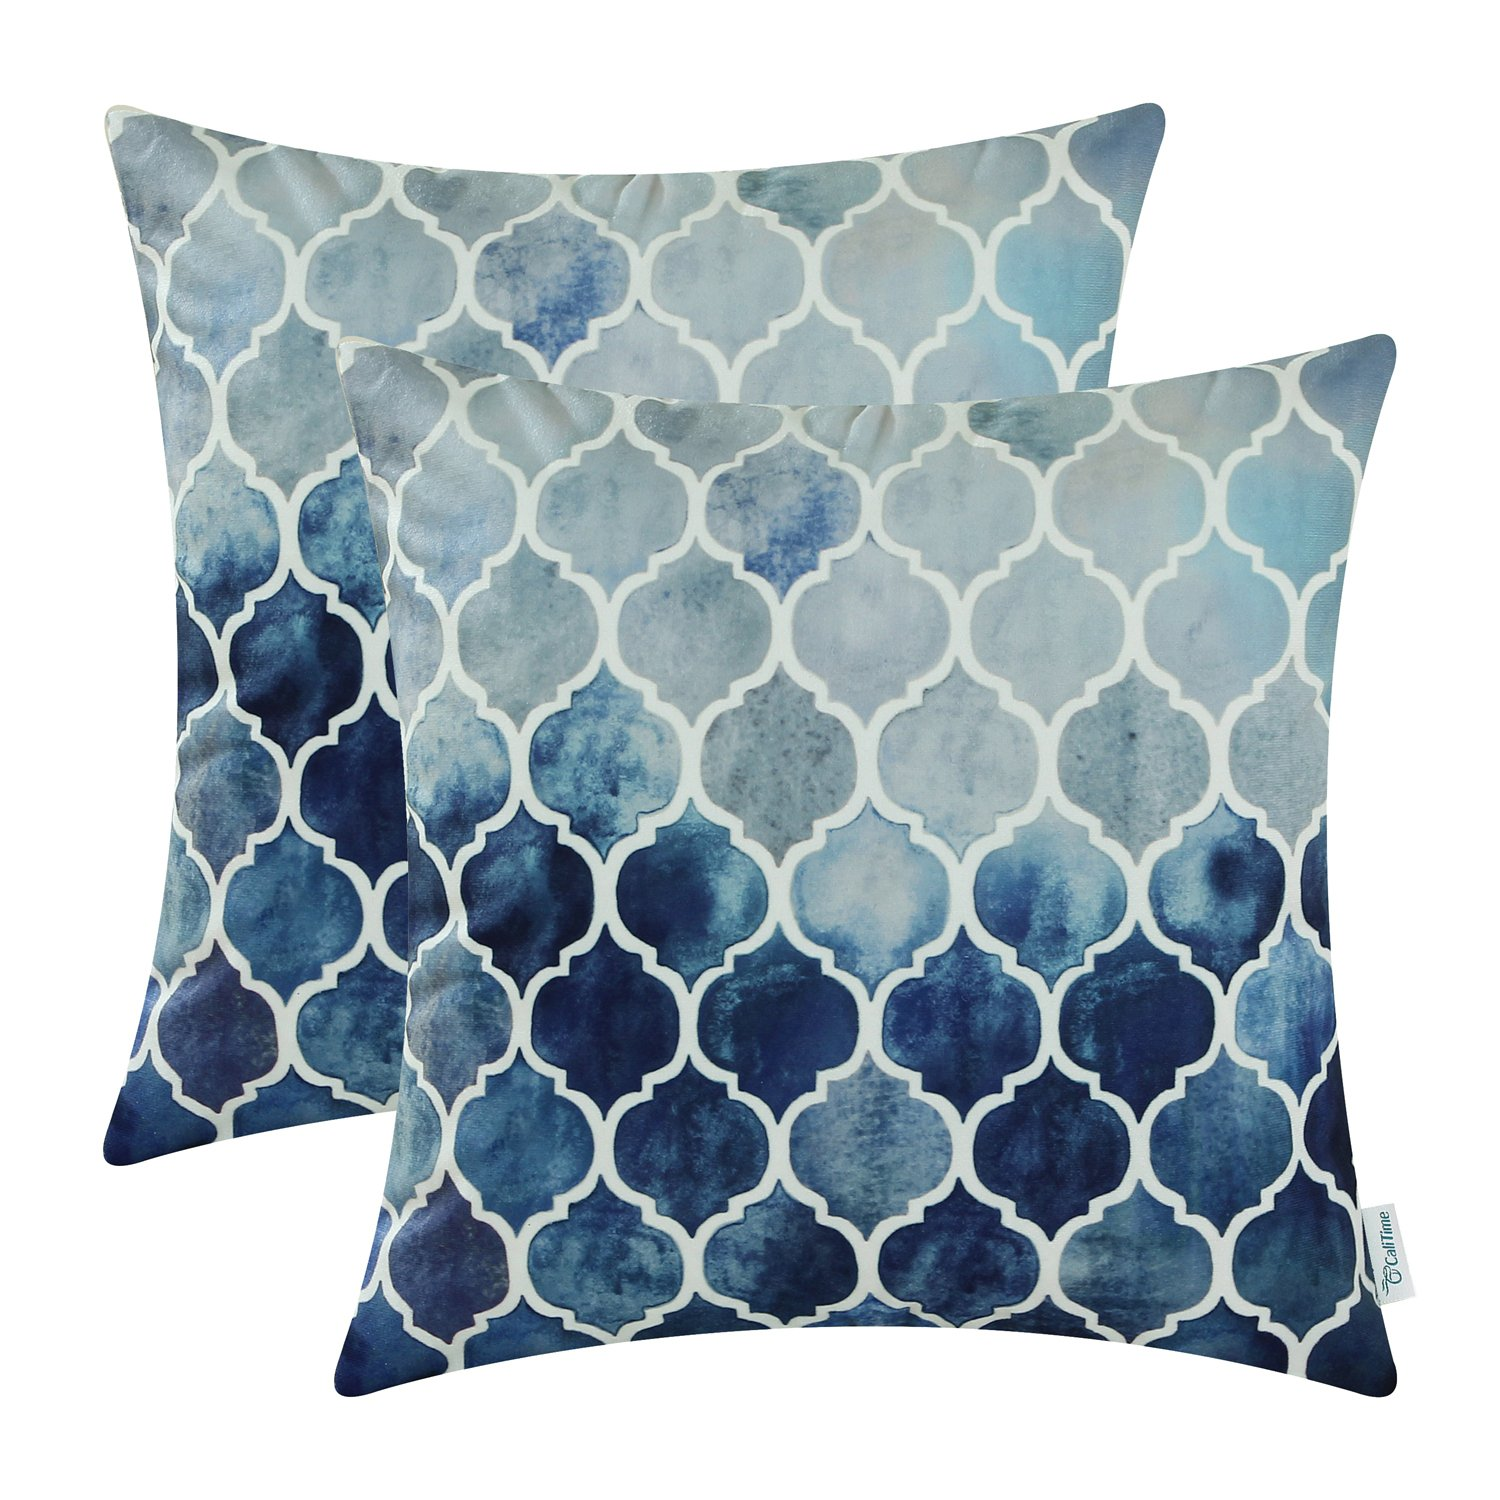 CaliTime Pack of 2 Cozy Throw Pillow Cases Covers for Couch Bed Sofa Manual Hand Painted Colorful Geometric Trellis Chain Print 18 X 18 Inches Main Grey Navy Blue